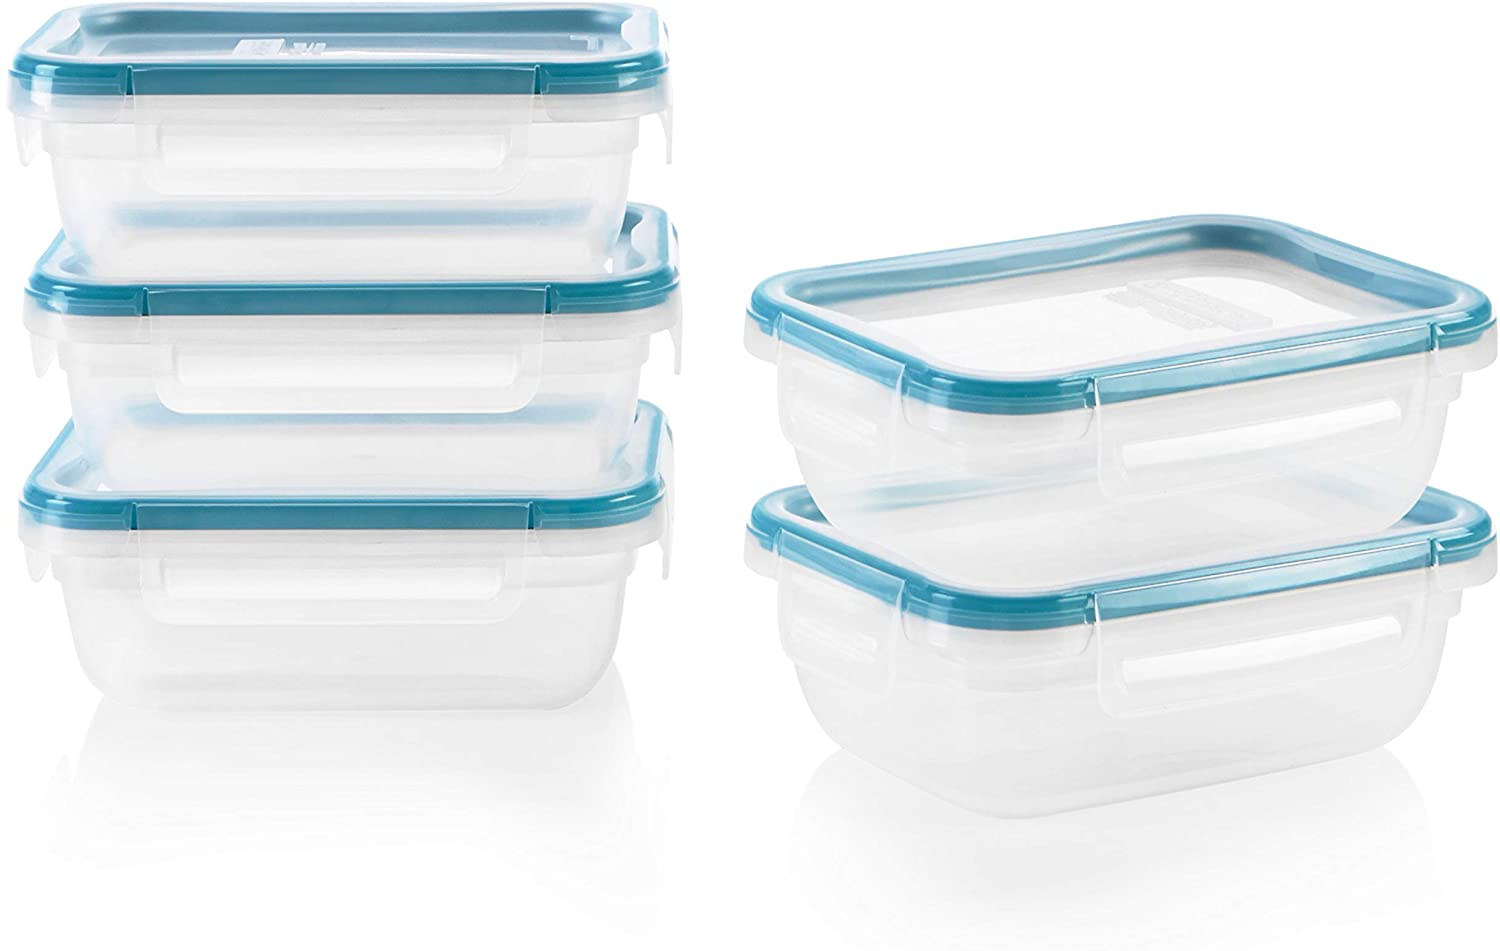 Snapware 1136622 SN TS 10pc Rect Plast Meal Prep Kit, 10 pieces